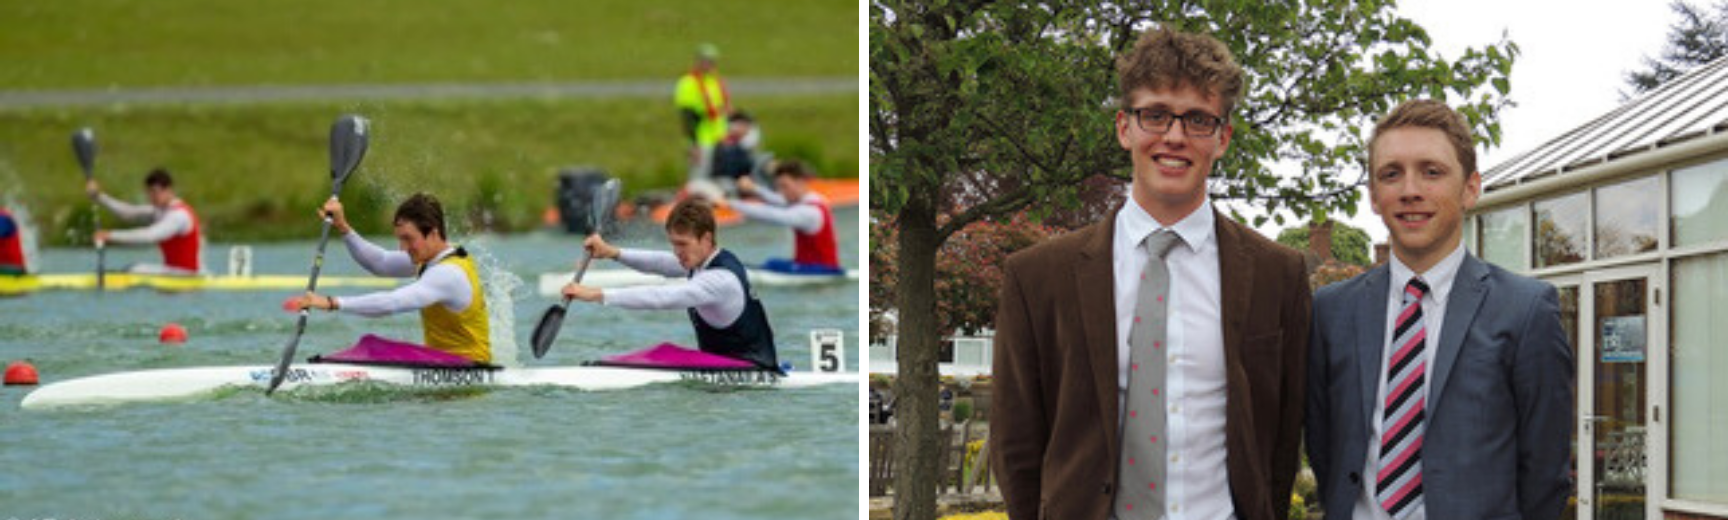 A picture of Magnus canoeing and a picture of Magnus dressed in a suit, in a garden with another person